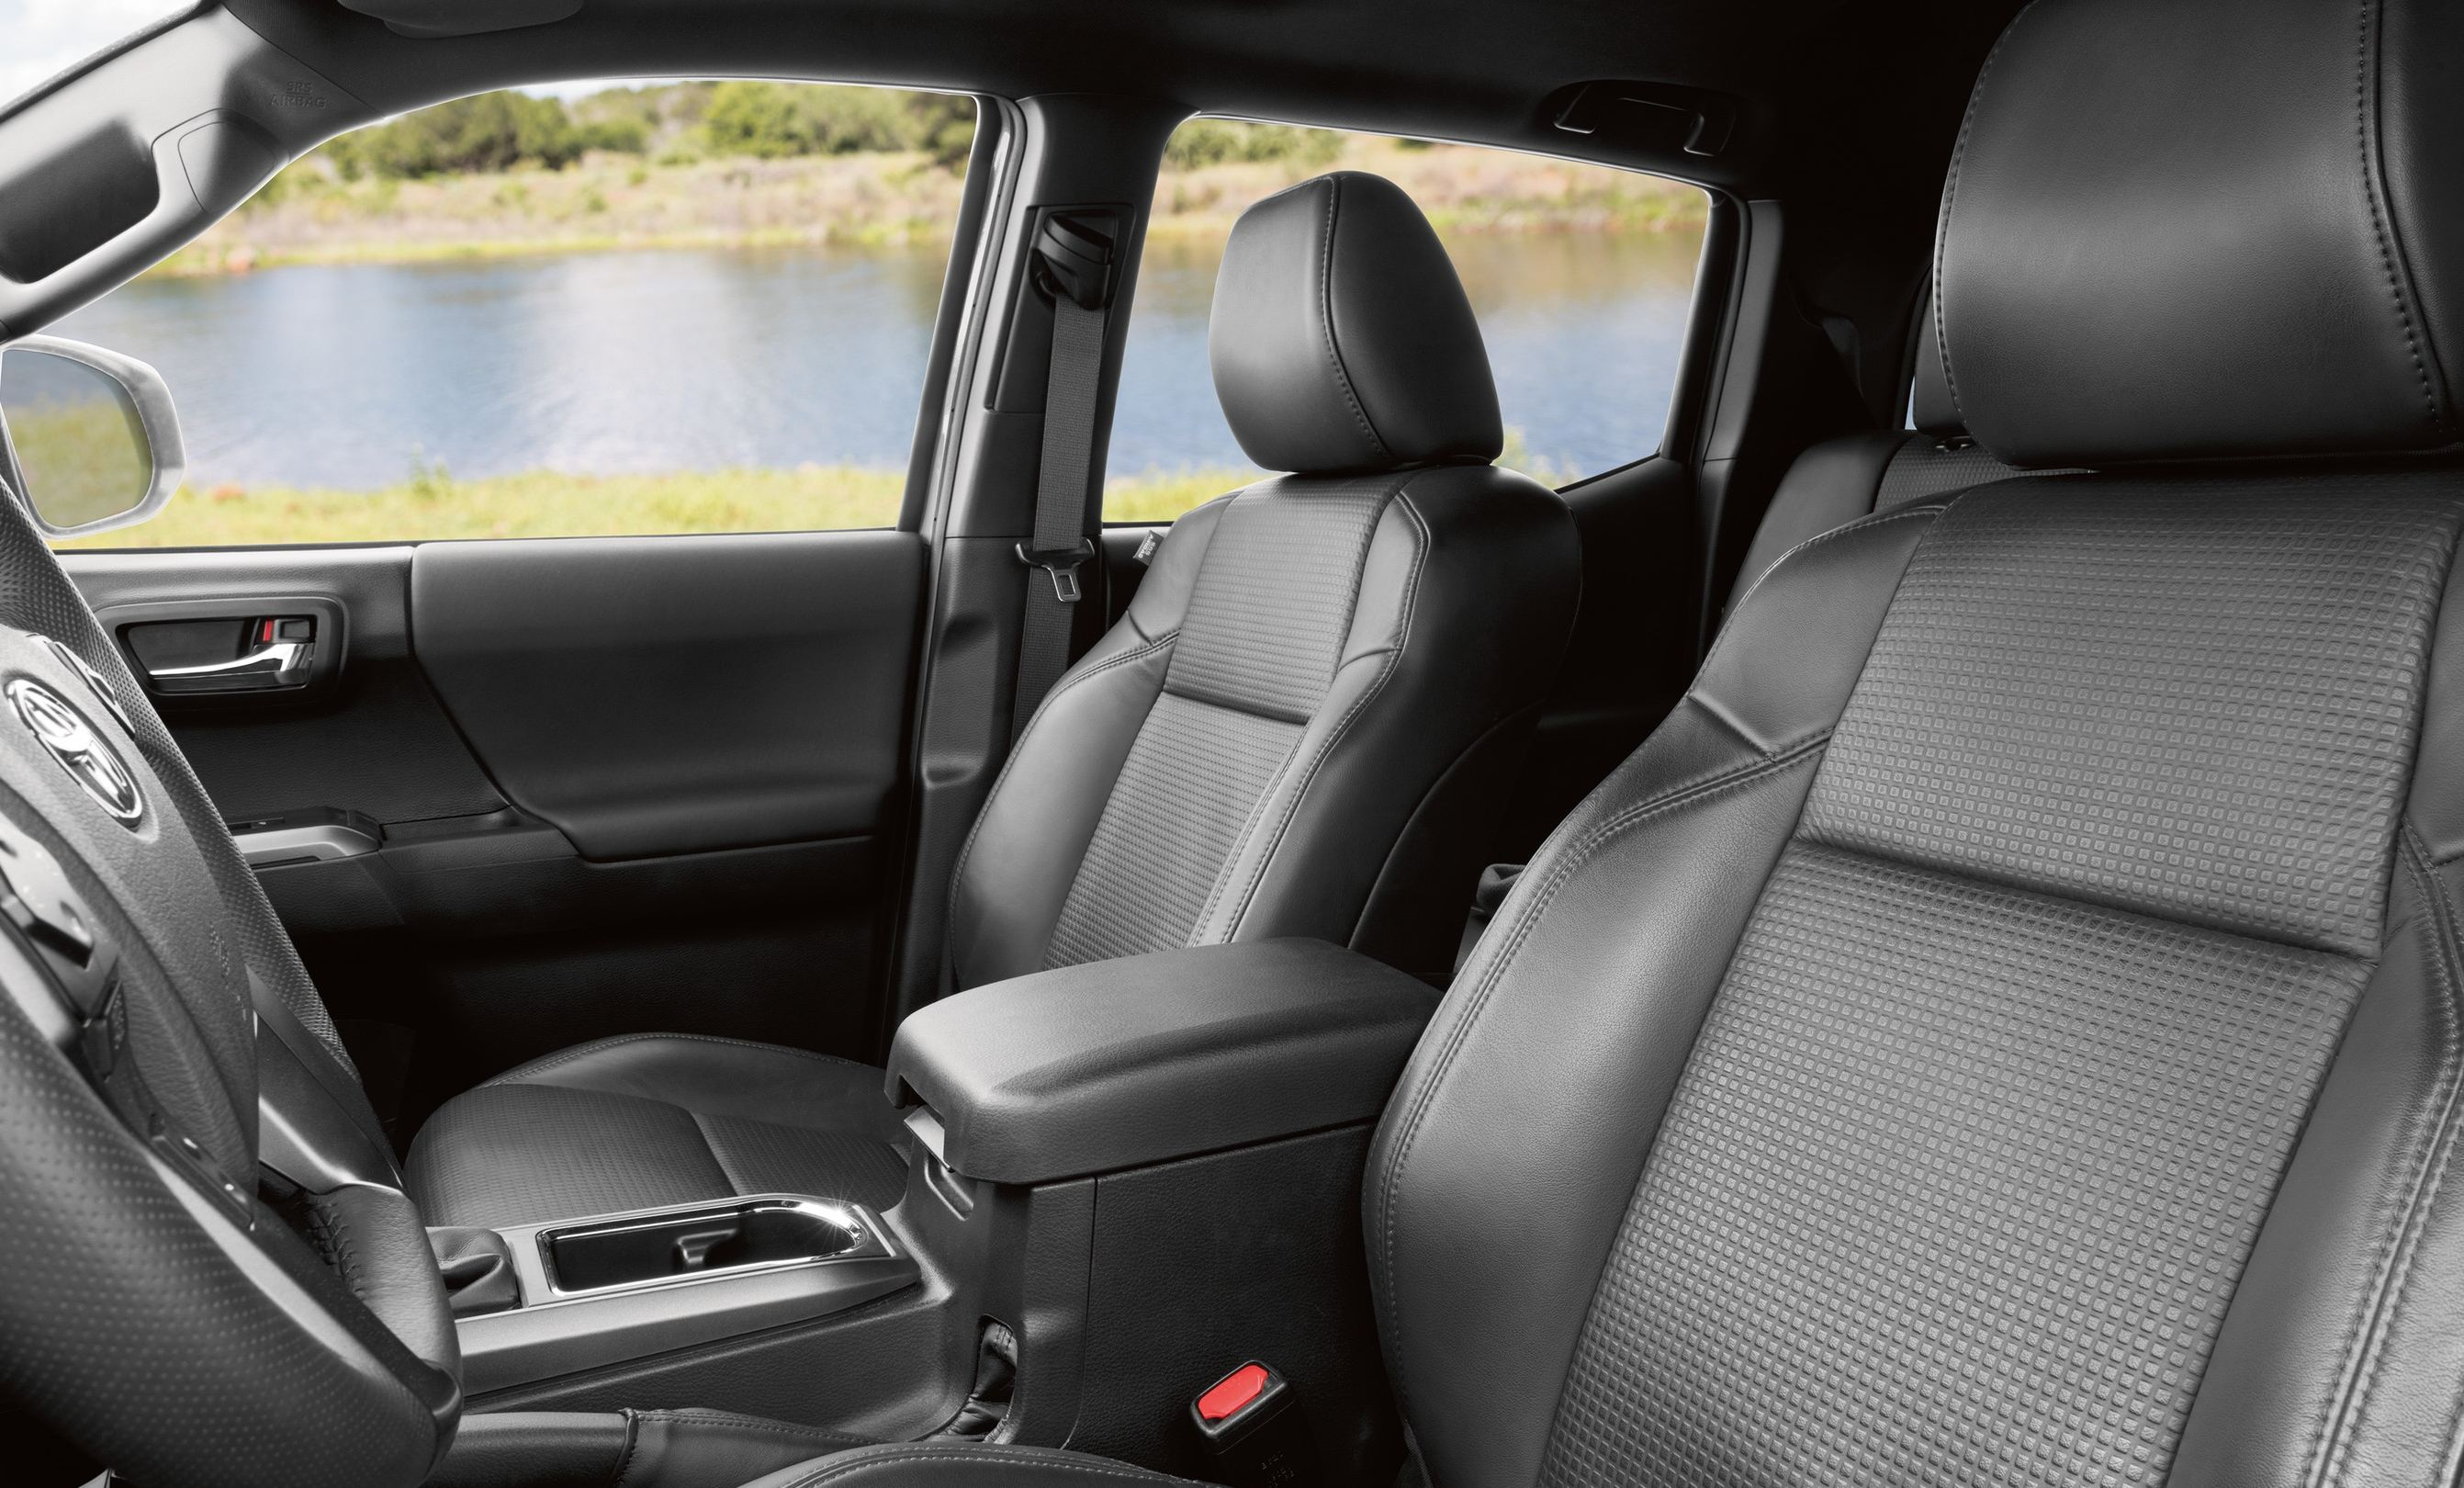 2020 Toyota Tacoma Front-Row Seating